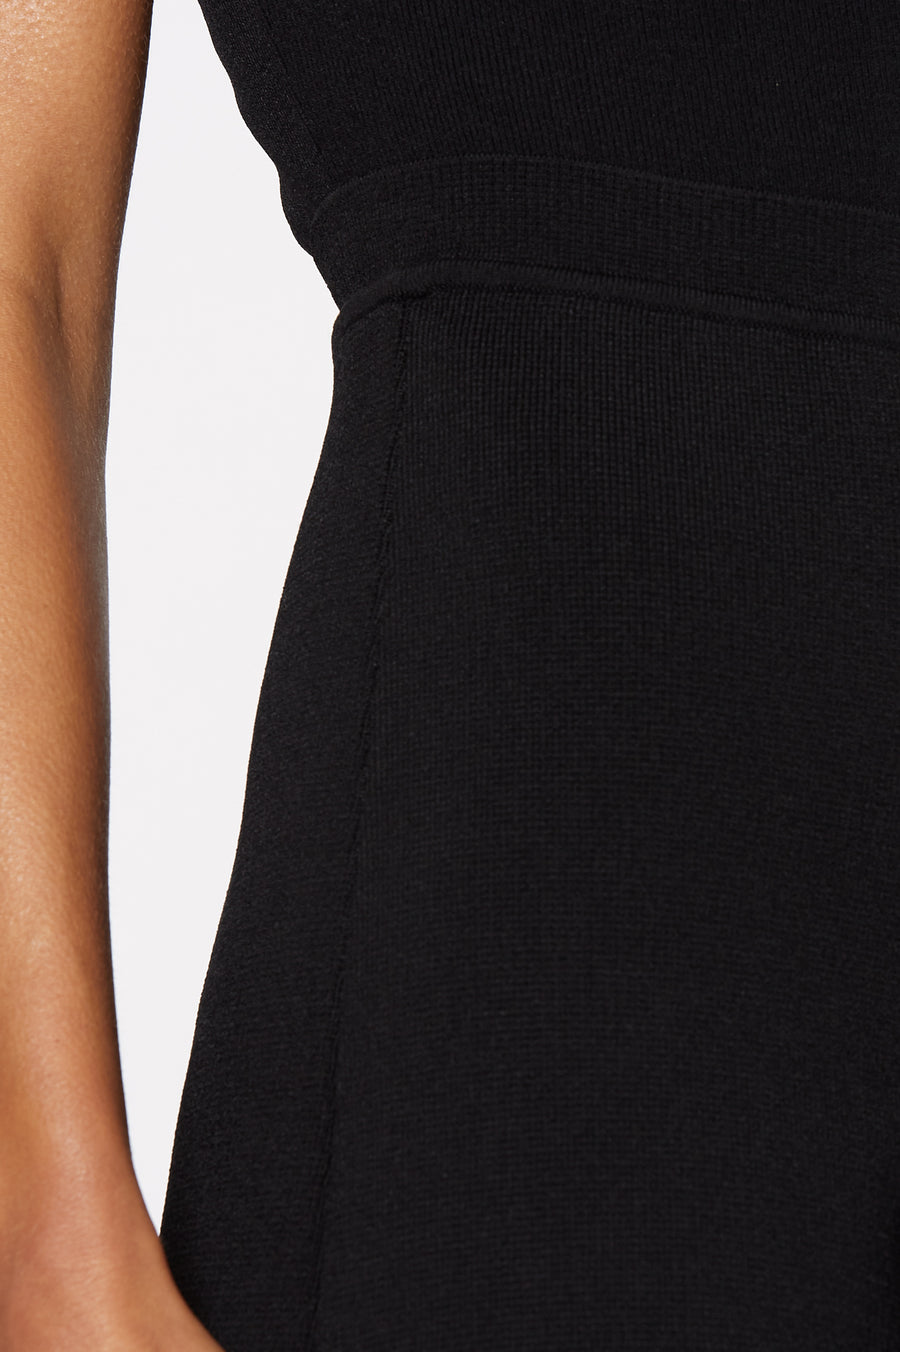 Crepe Knit shorts, high waisted, fitted short, mid thigh, Color Black